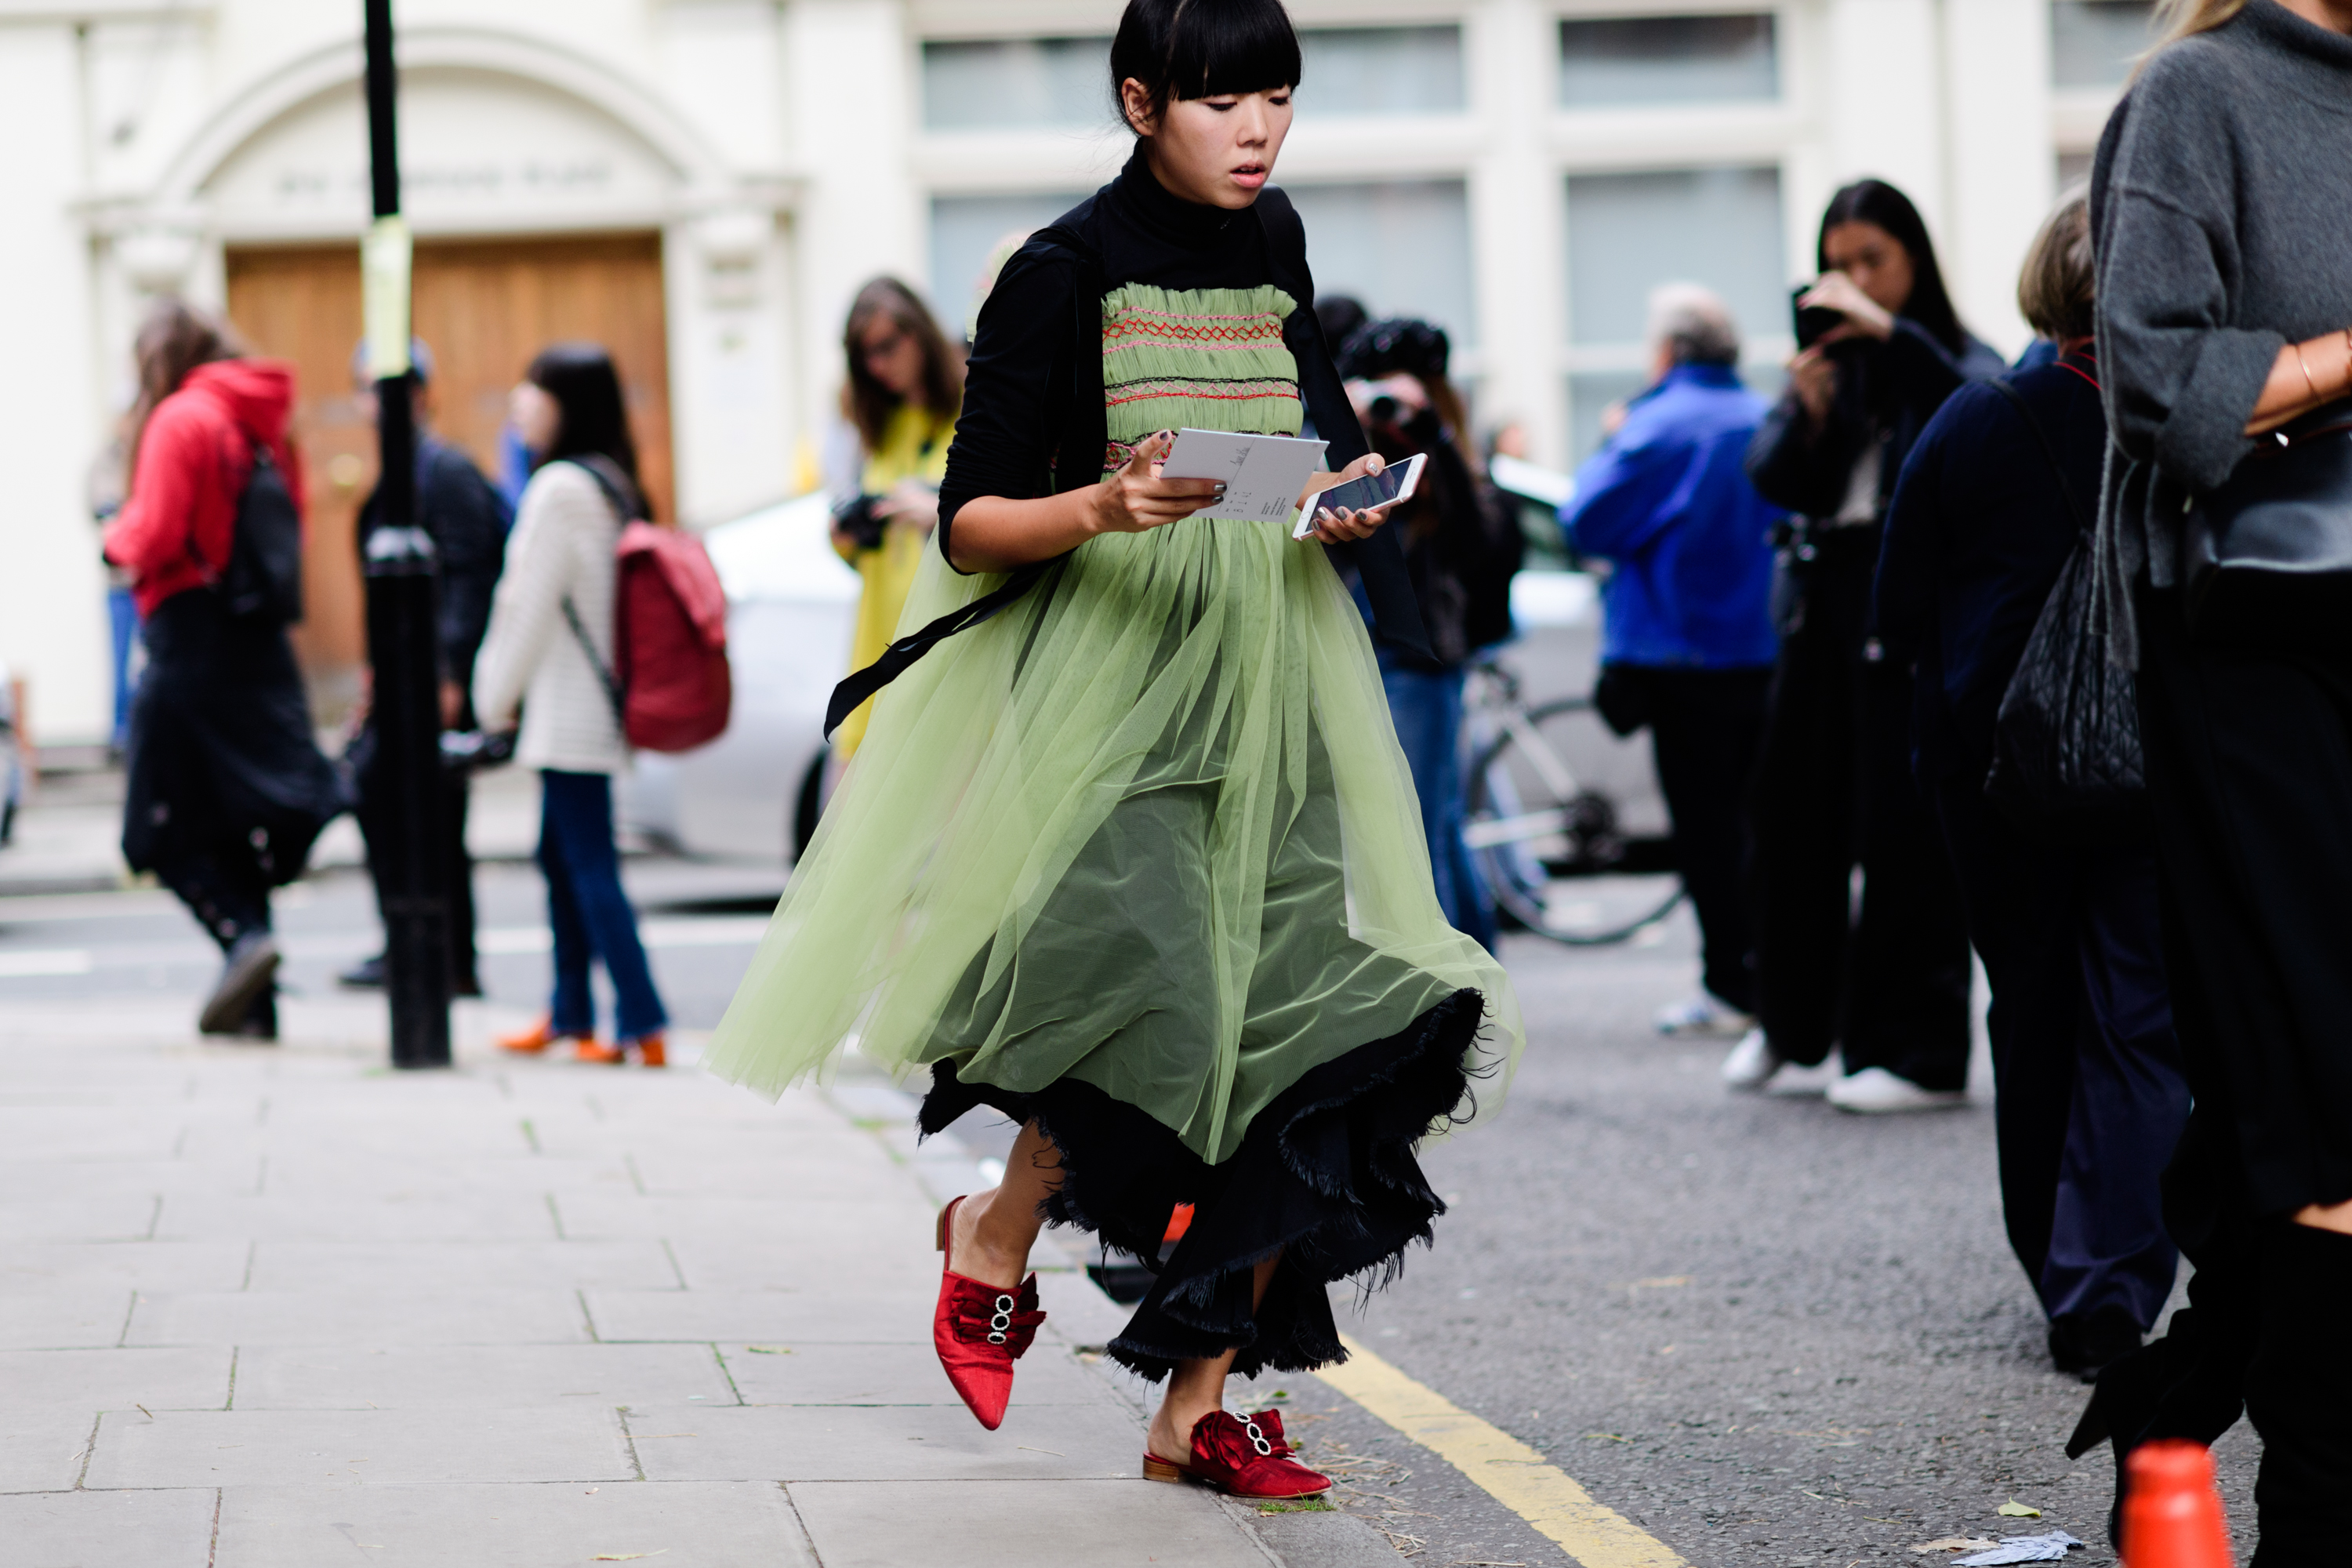 london-lfw-street-style-ss18-day-1-tyler-joe-011-1505753321